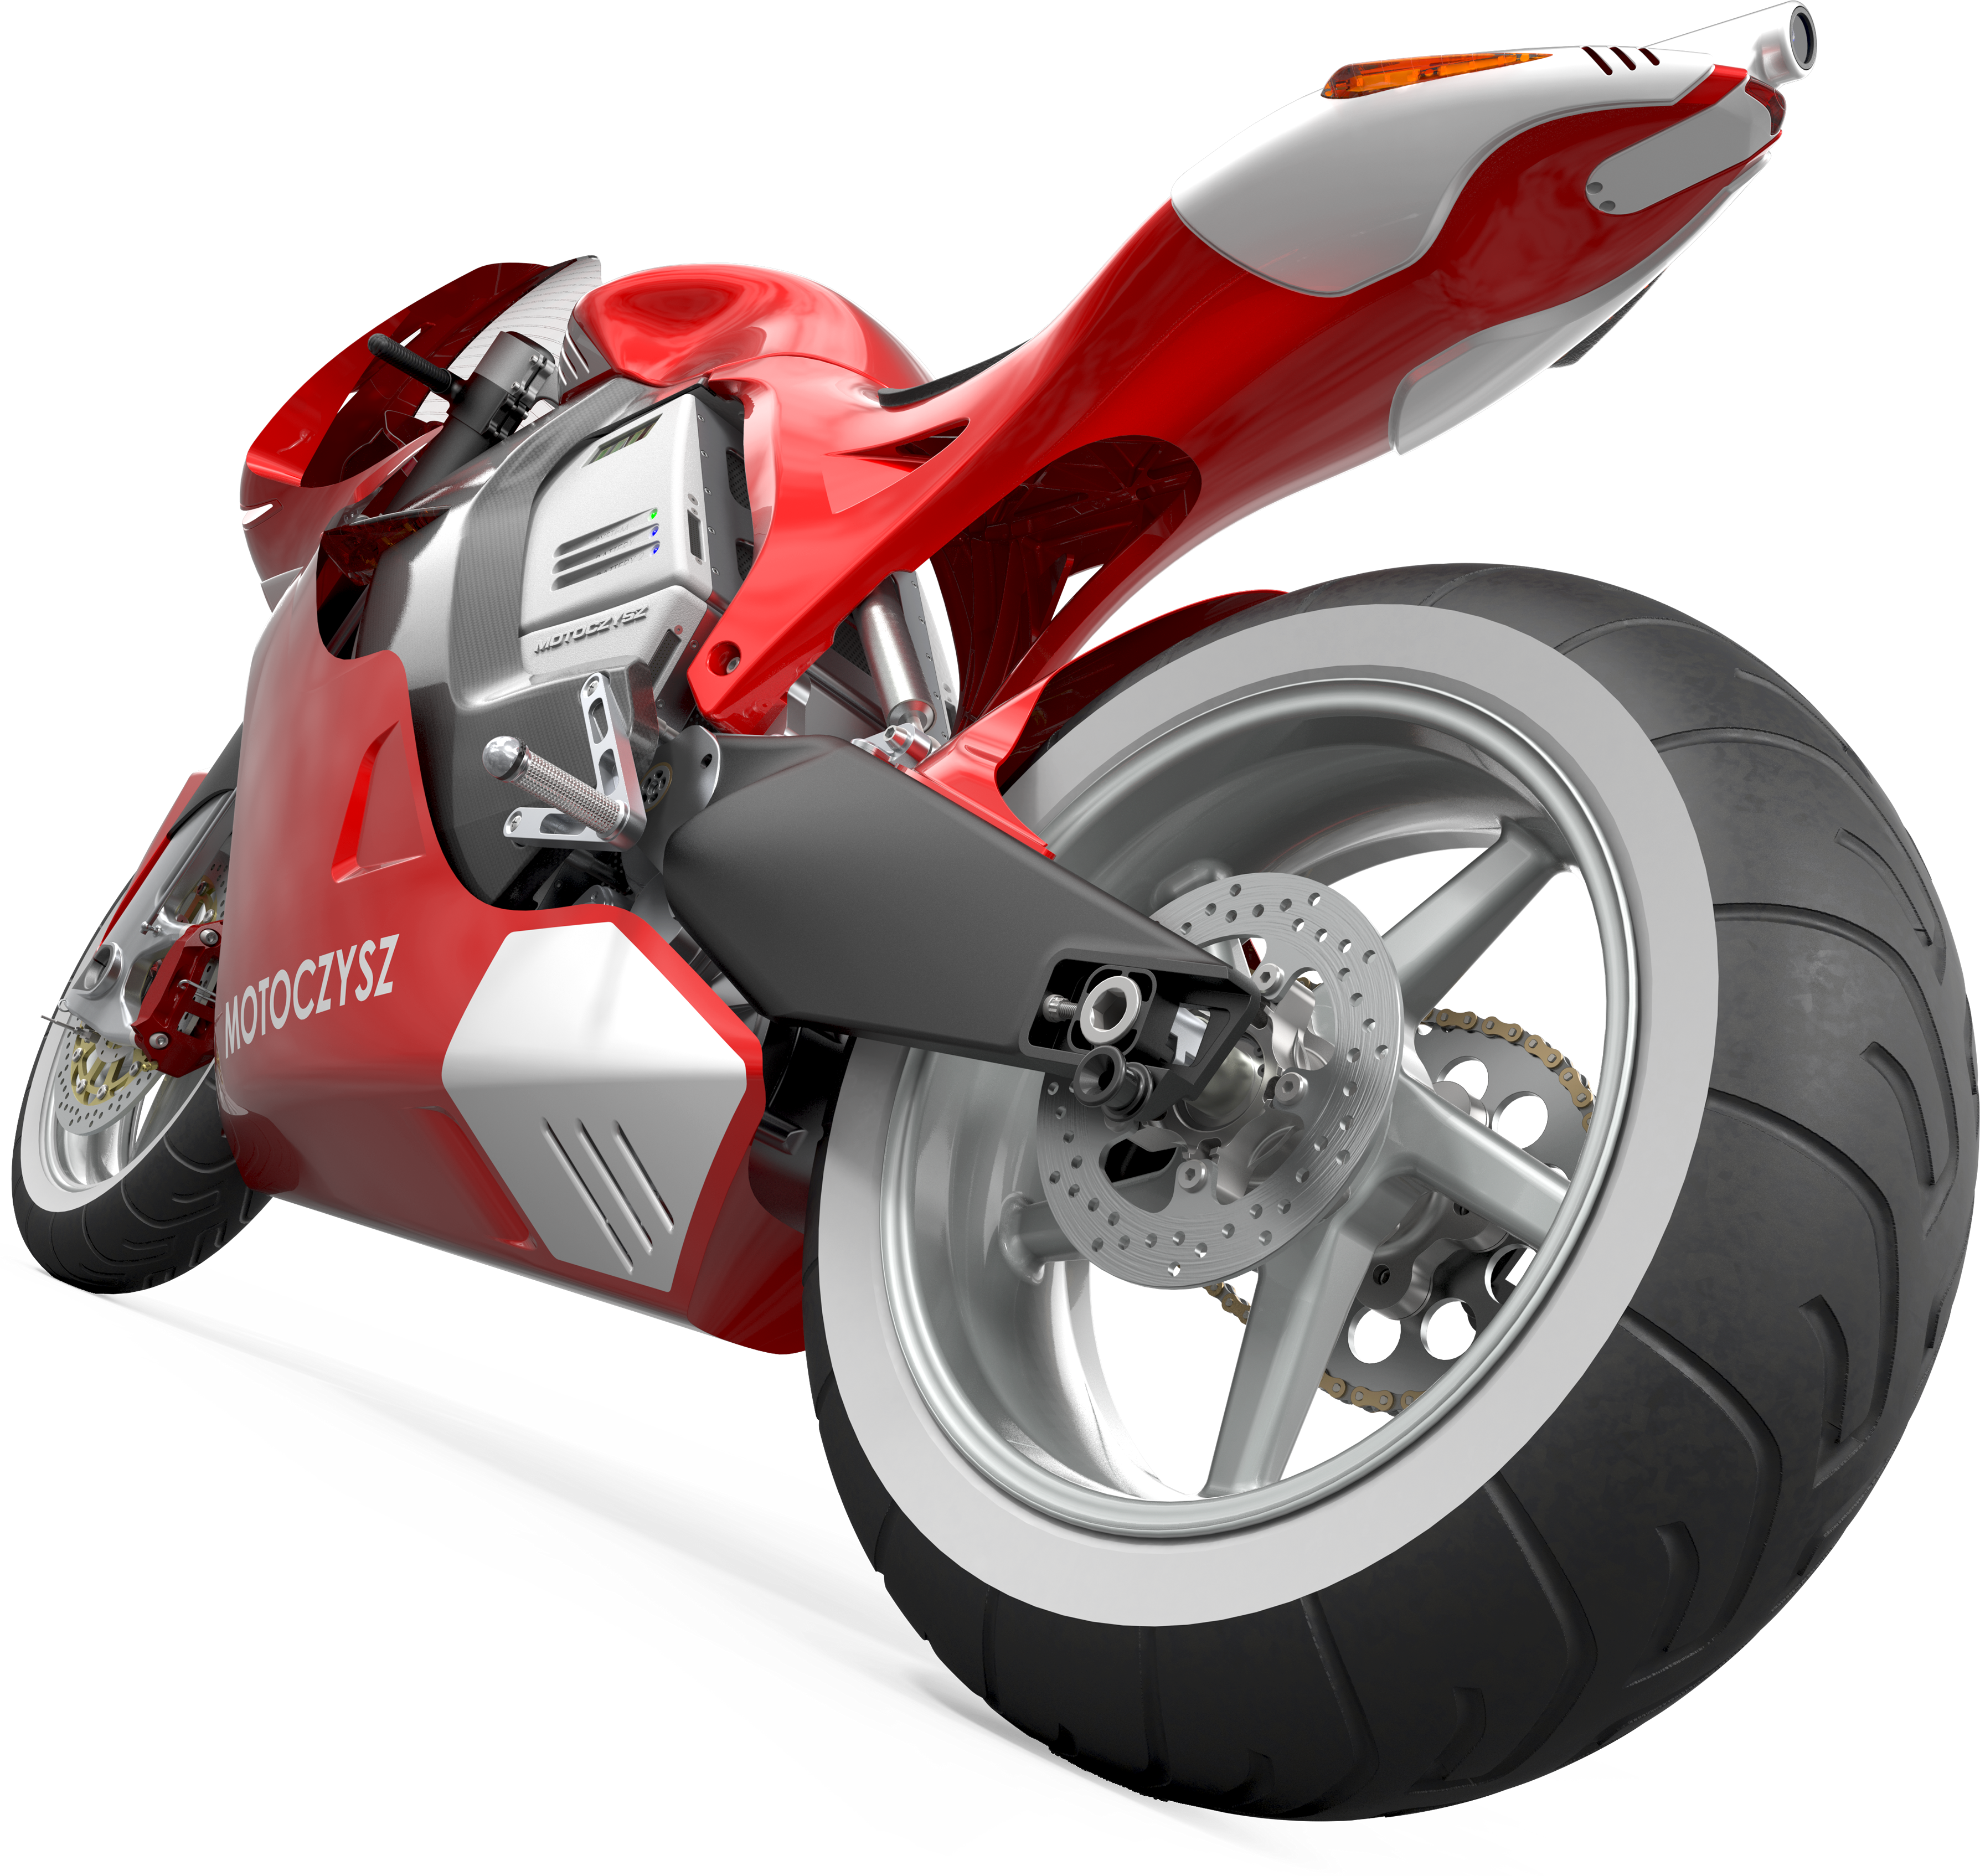 free motorcycle without  Motorcycle PNG Image - PurePNG | Free transparent CC0 PNG Image Library